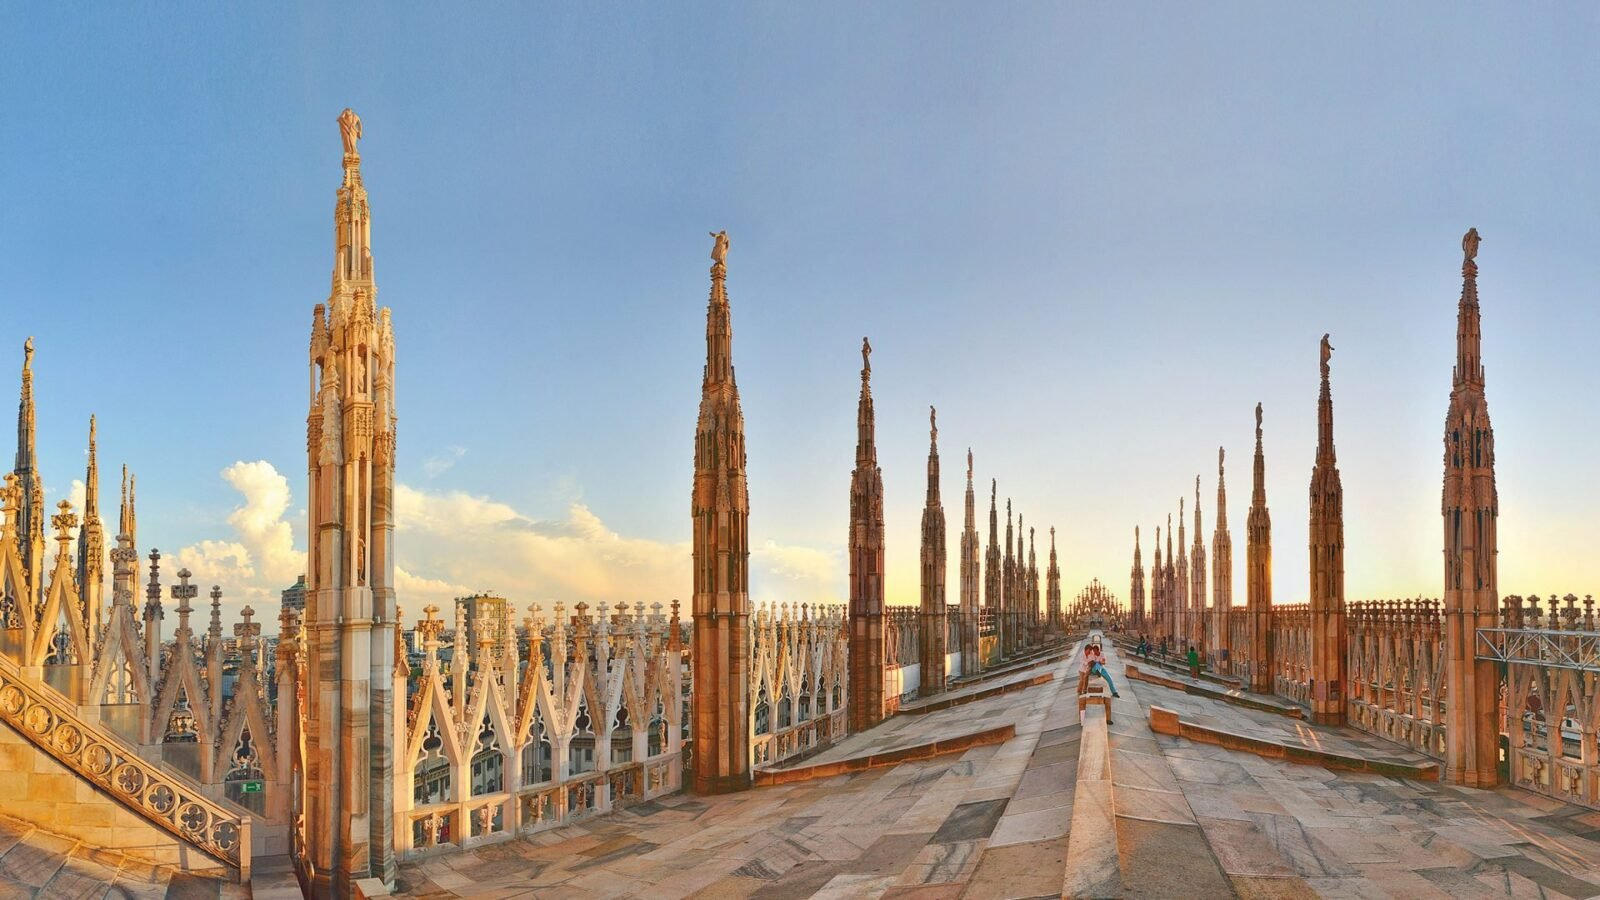 Roof Terraces of the Duomo